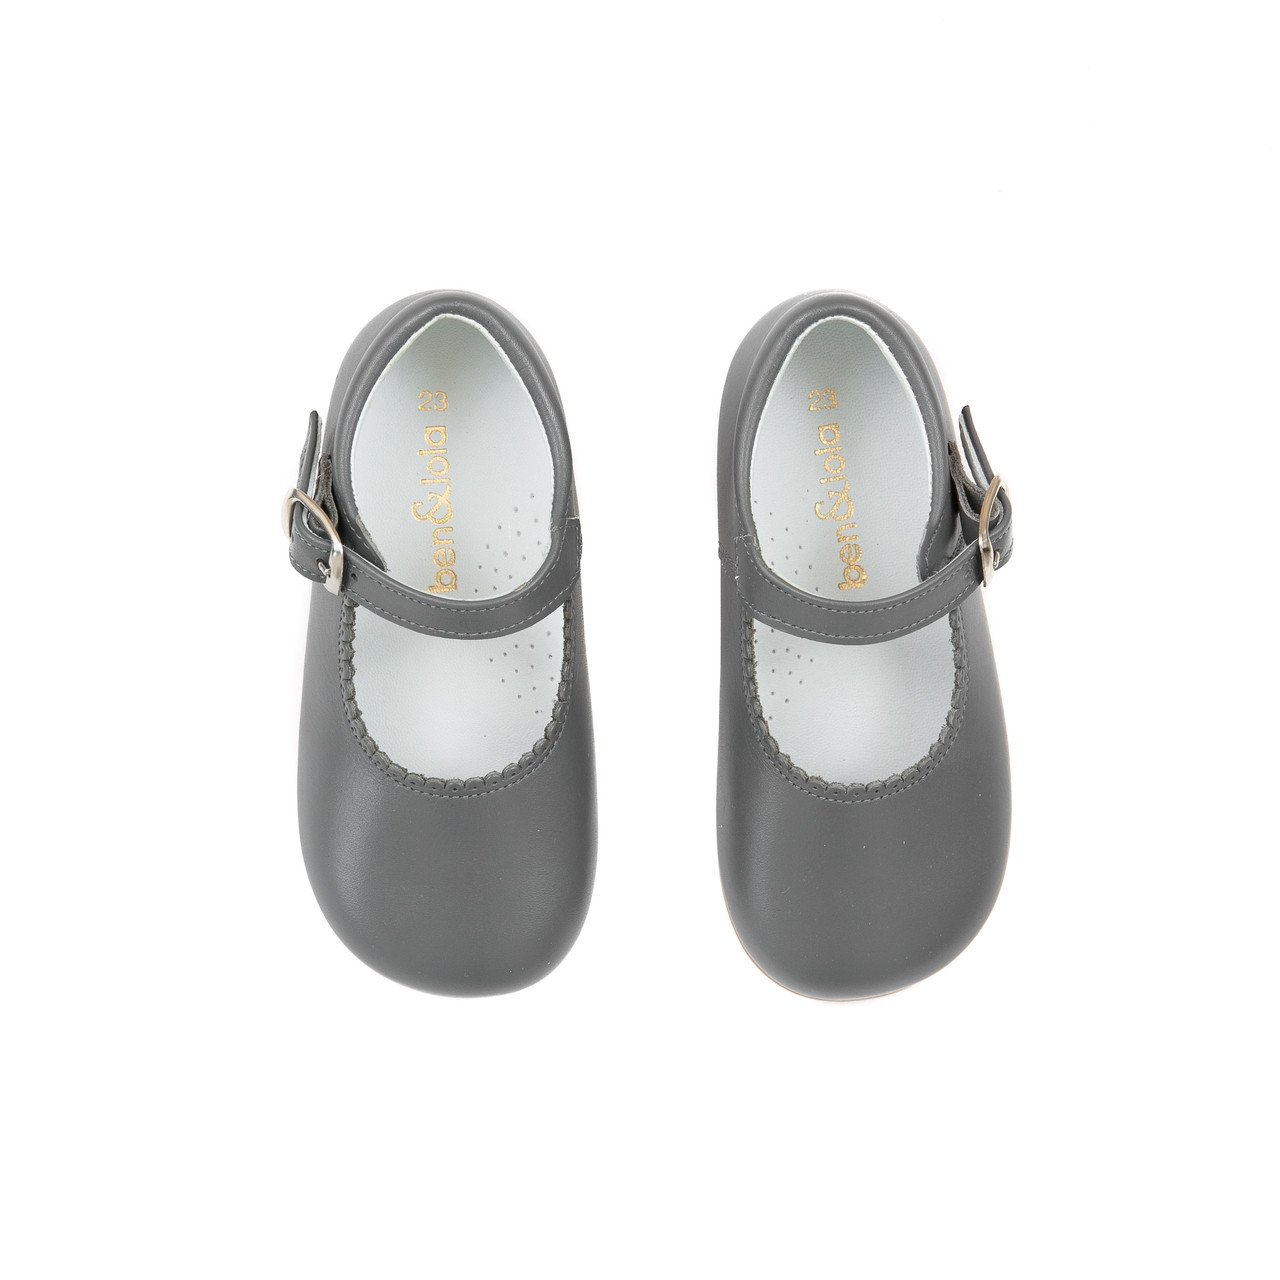 df64c6757f ... Little Girl Grey Leather Mary Jane Shoes From Ben & Lola. Loading zoom